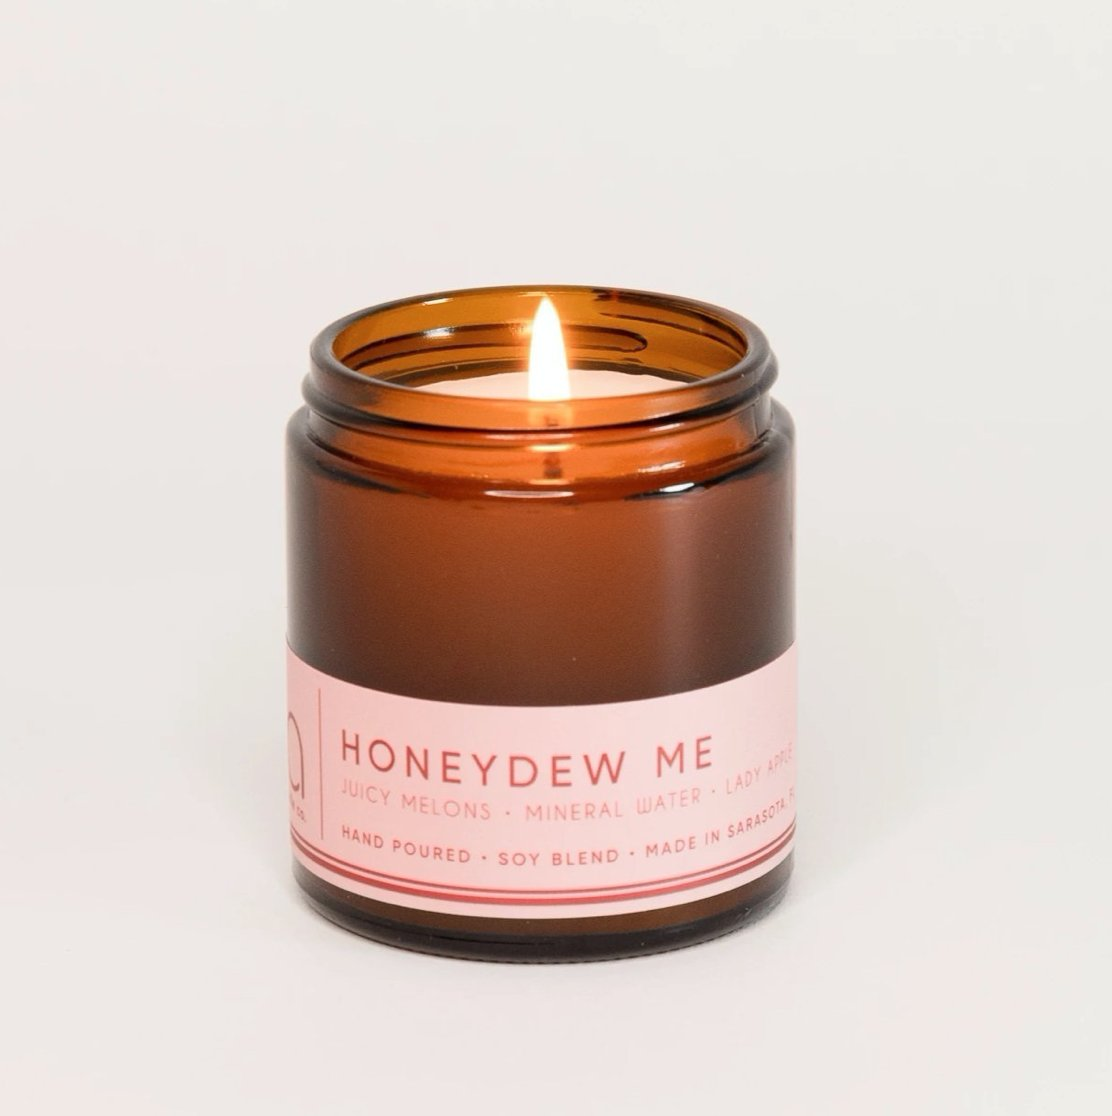 HONEYDEW ME Petite Candle 20hr Burn - Molly's! A Chic and Unique Boutique